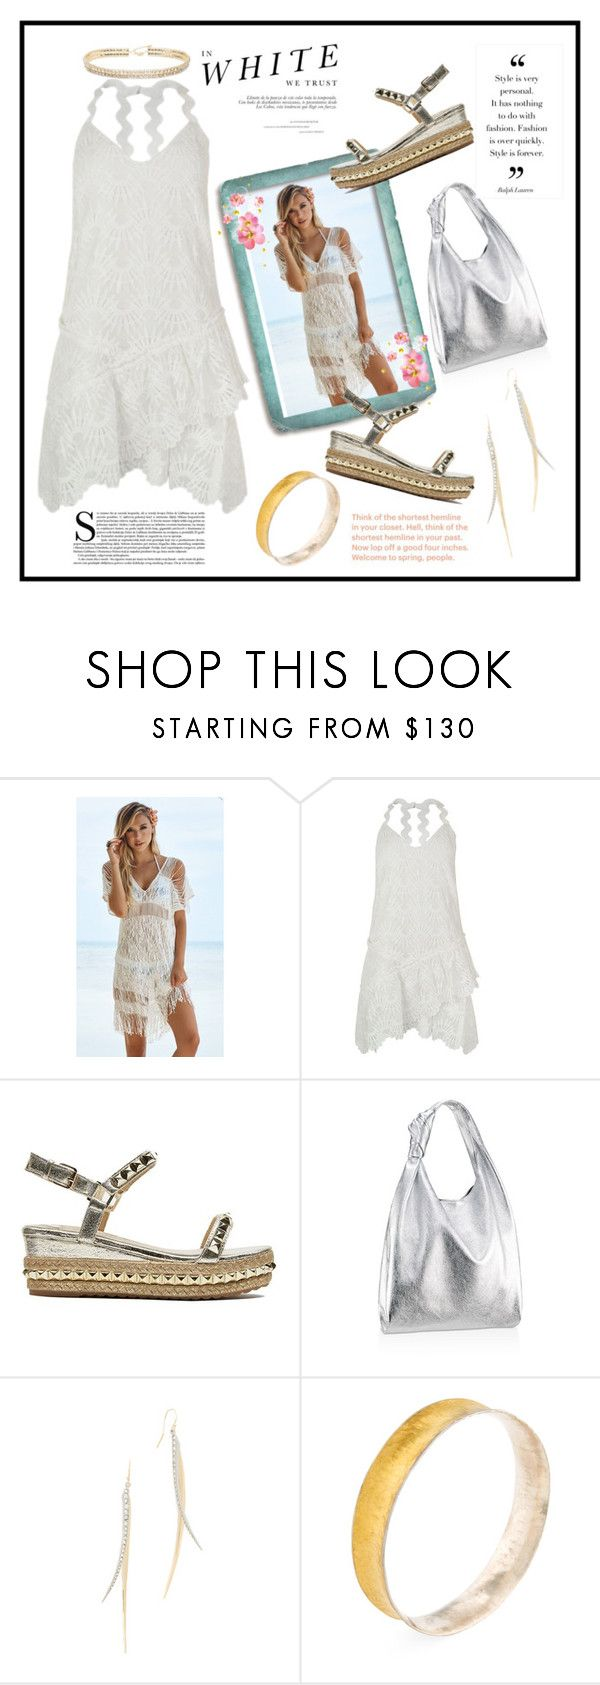 """Summer Dress...By the Sea"" by onesweetthing ❤ liked on Polyvore featuring Madara, Beach Bunny, Three Floor, Loeffler Randall, Alexis Bittar, Gurhan, ABS by Allen Schwartz, christianlouboutin, whitedress and summerdresses"